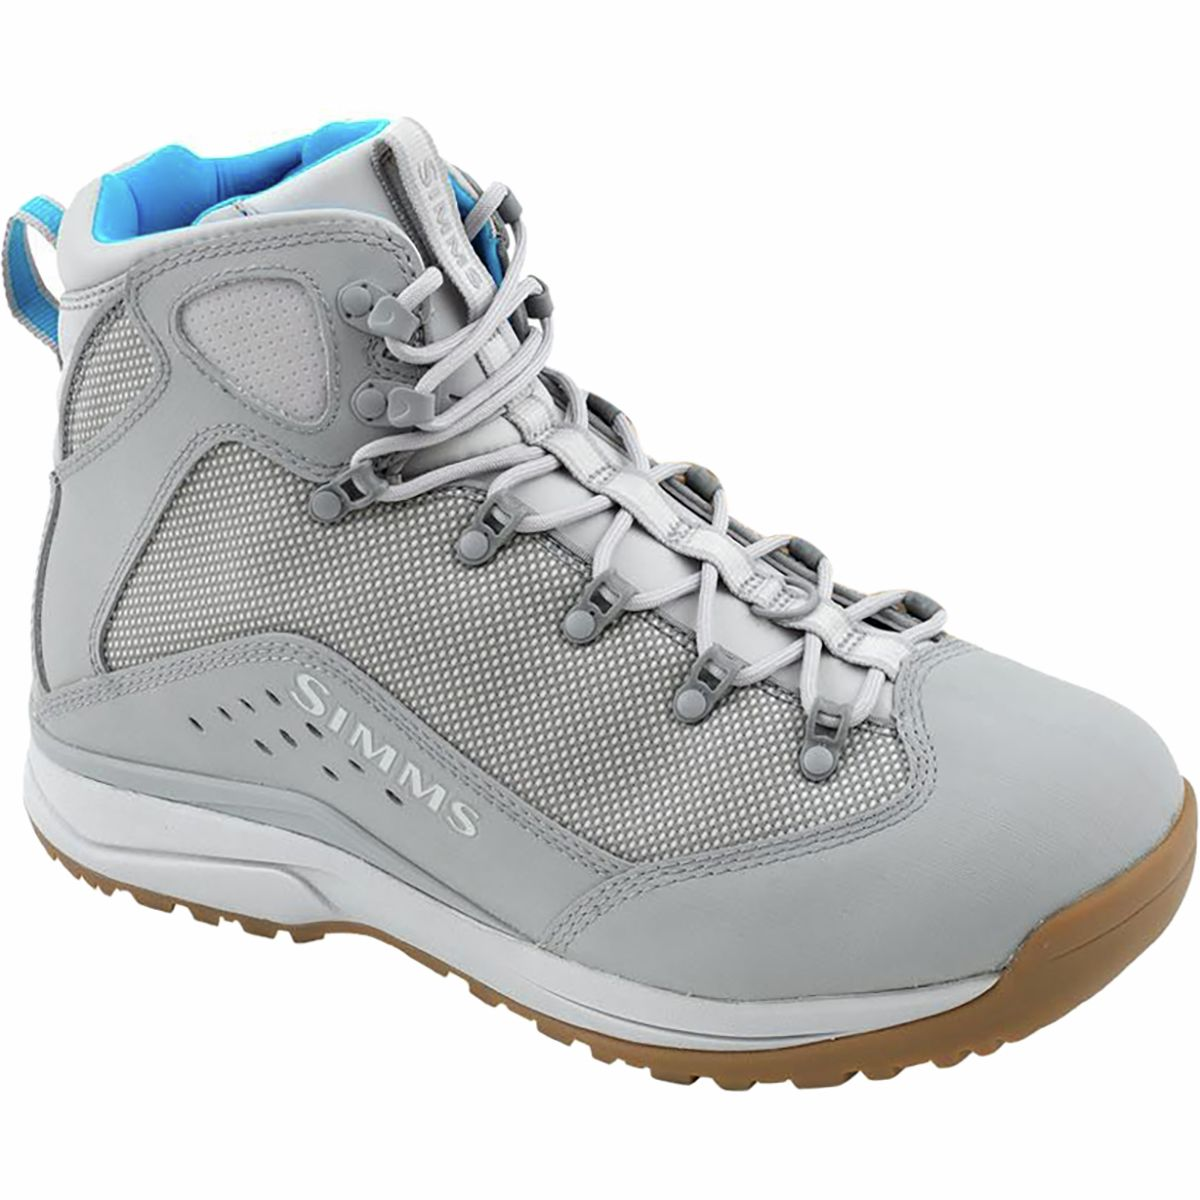 photo: Simms VaporTread Saltwater Wading Boot wading boots